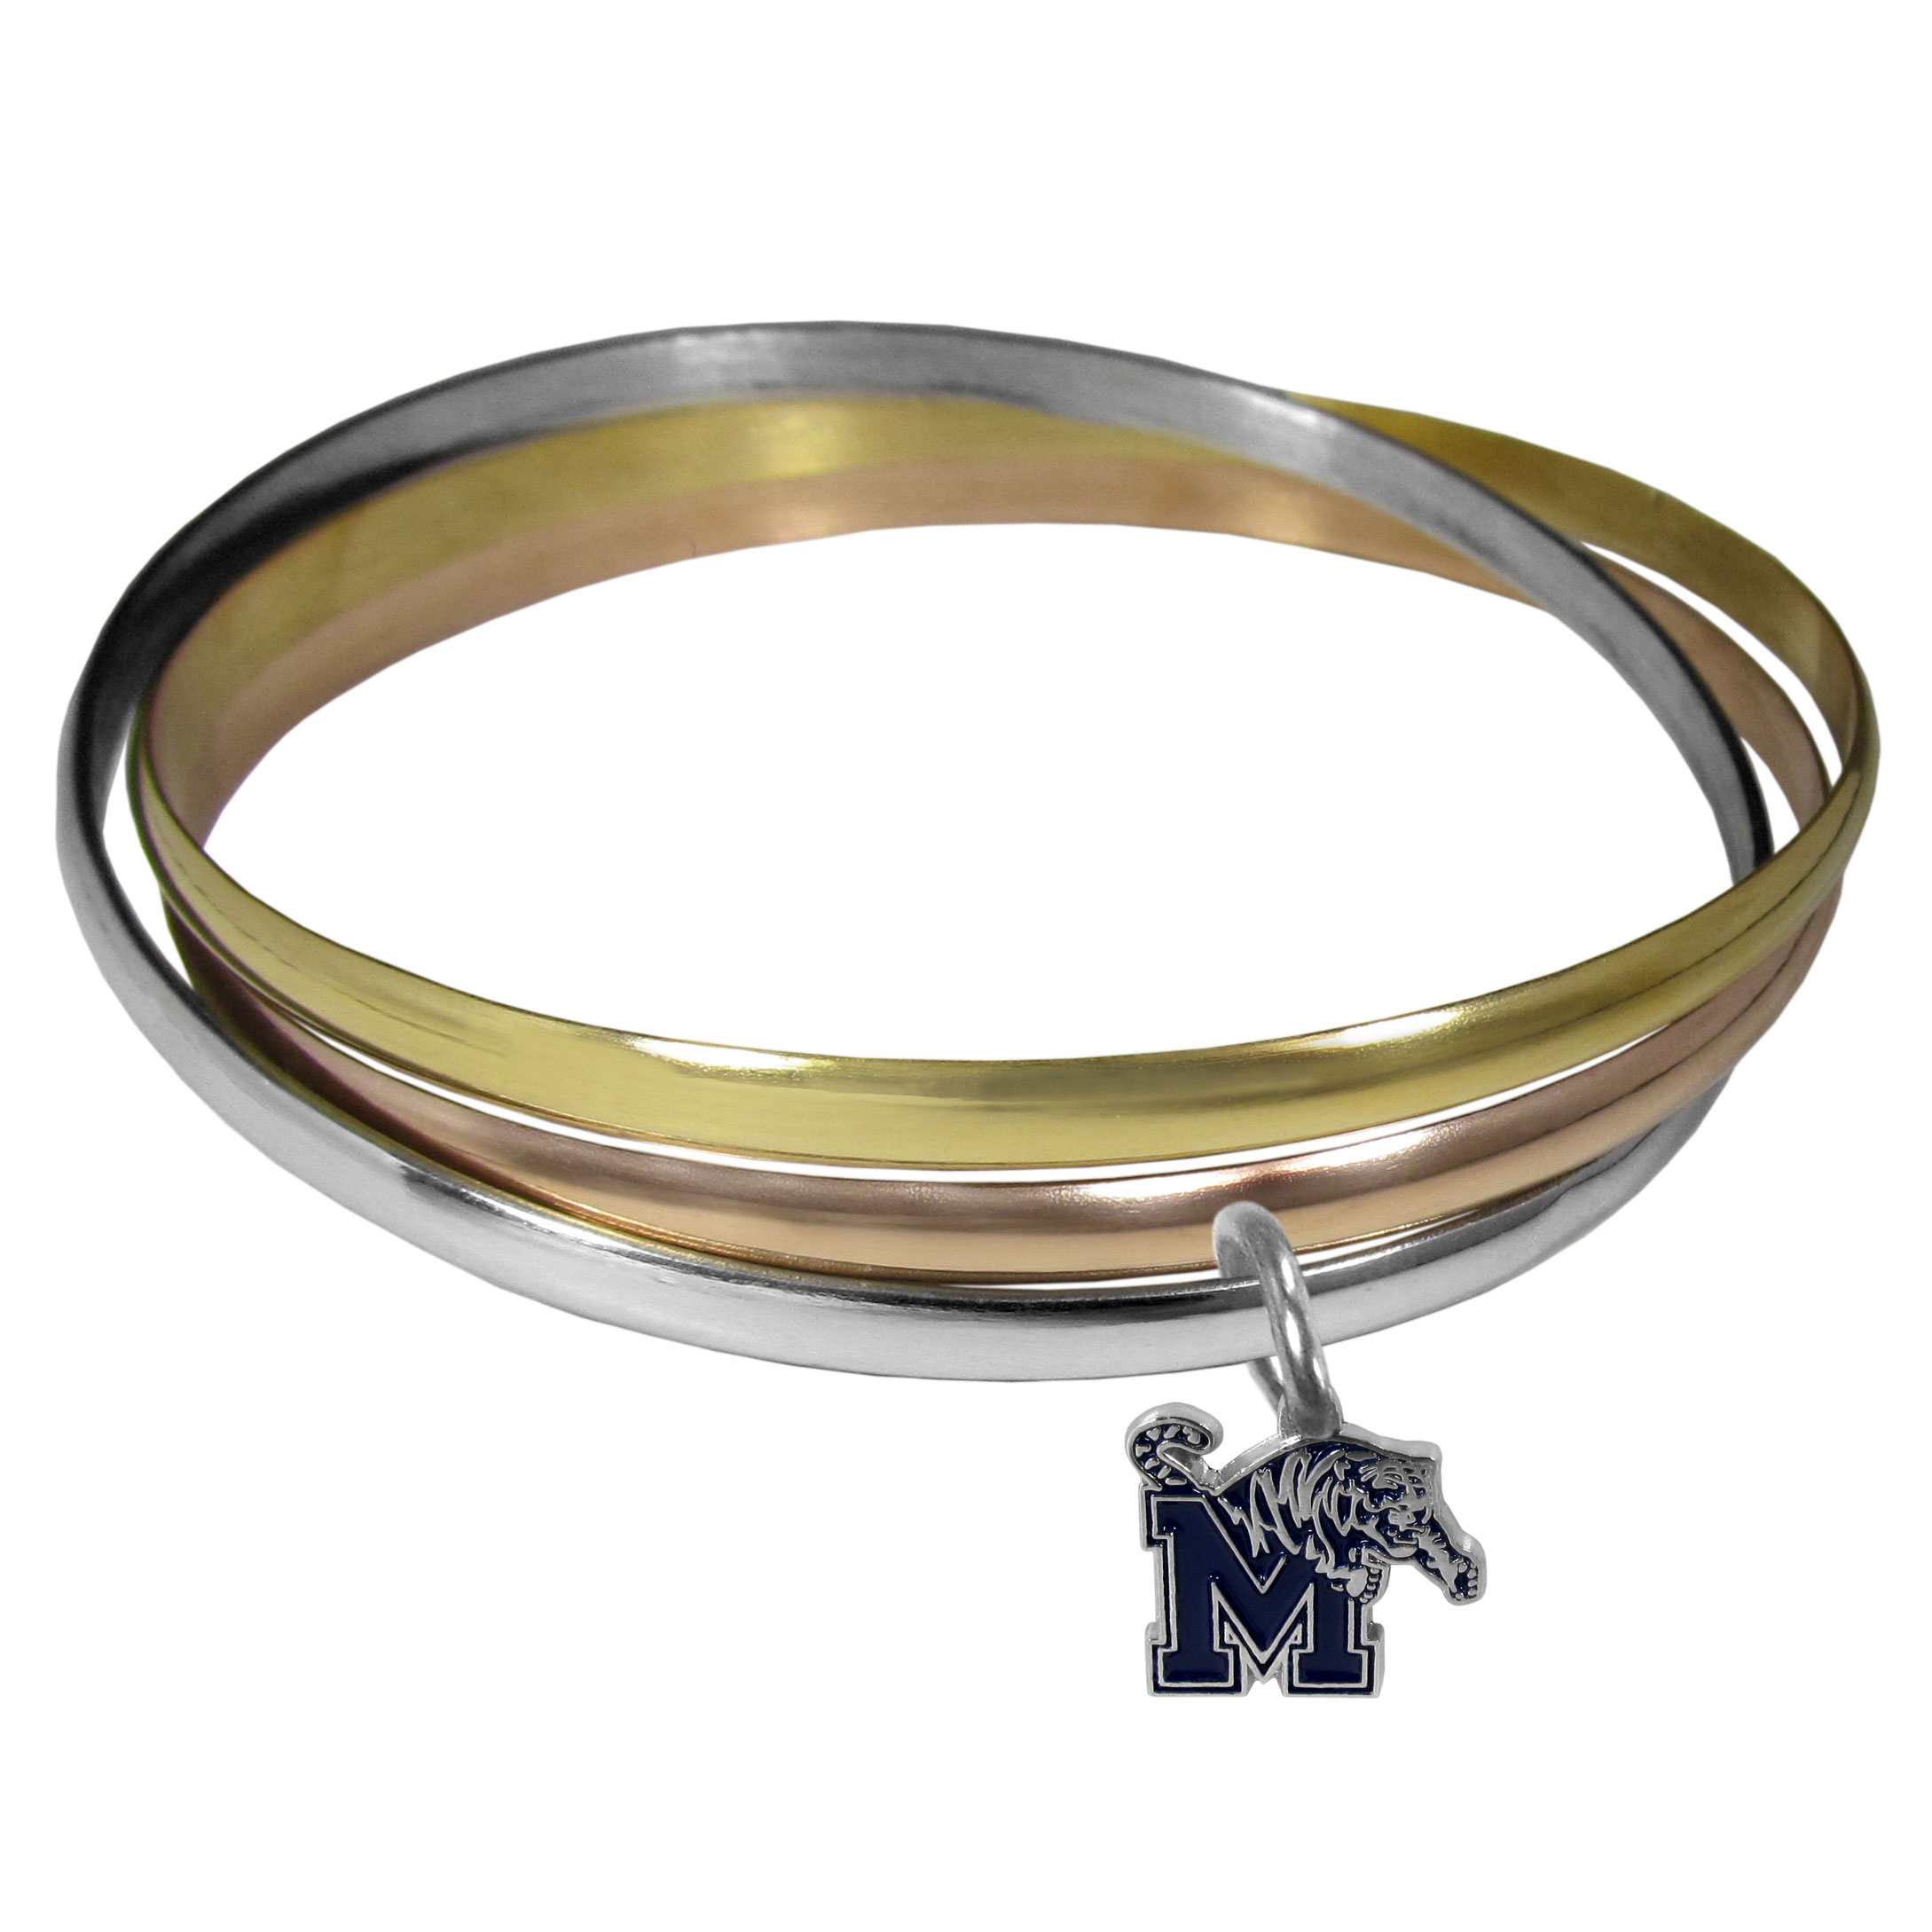 Memphis Tigers Tri-color Bangle Bracelet - These beautiful bangles come in a interlocking style and feature a fully cast Memphis Tigers charm with enameled team colors. The bracelet has a silver toned bangle, gold tone bangle and brass toned bangle.